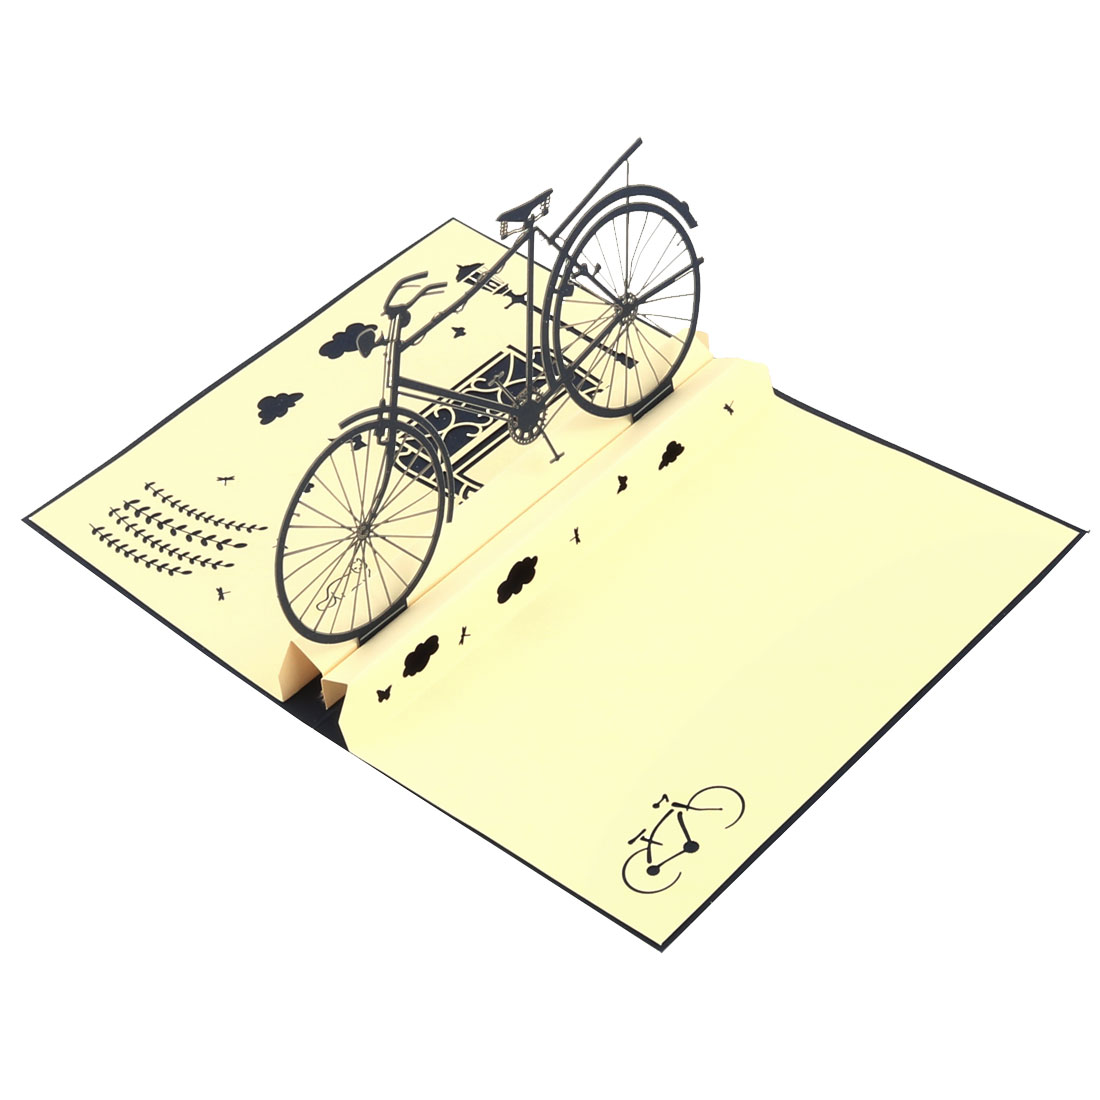 Halloween Paper Bicycle Design Vintage Style 3D Invitation Greeting Card Craft